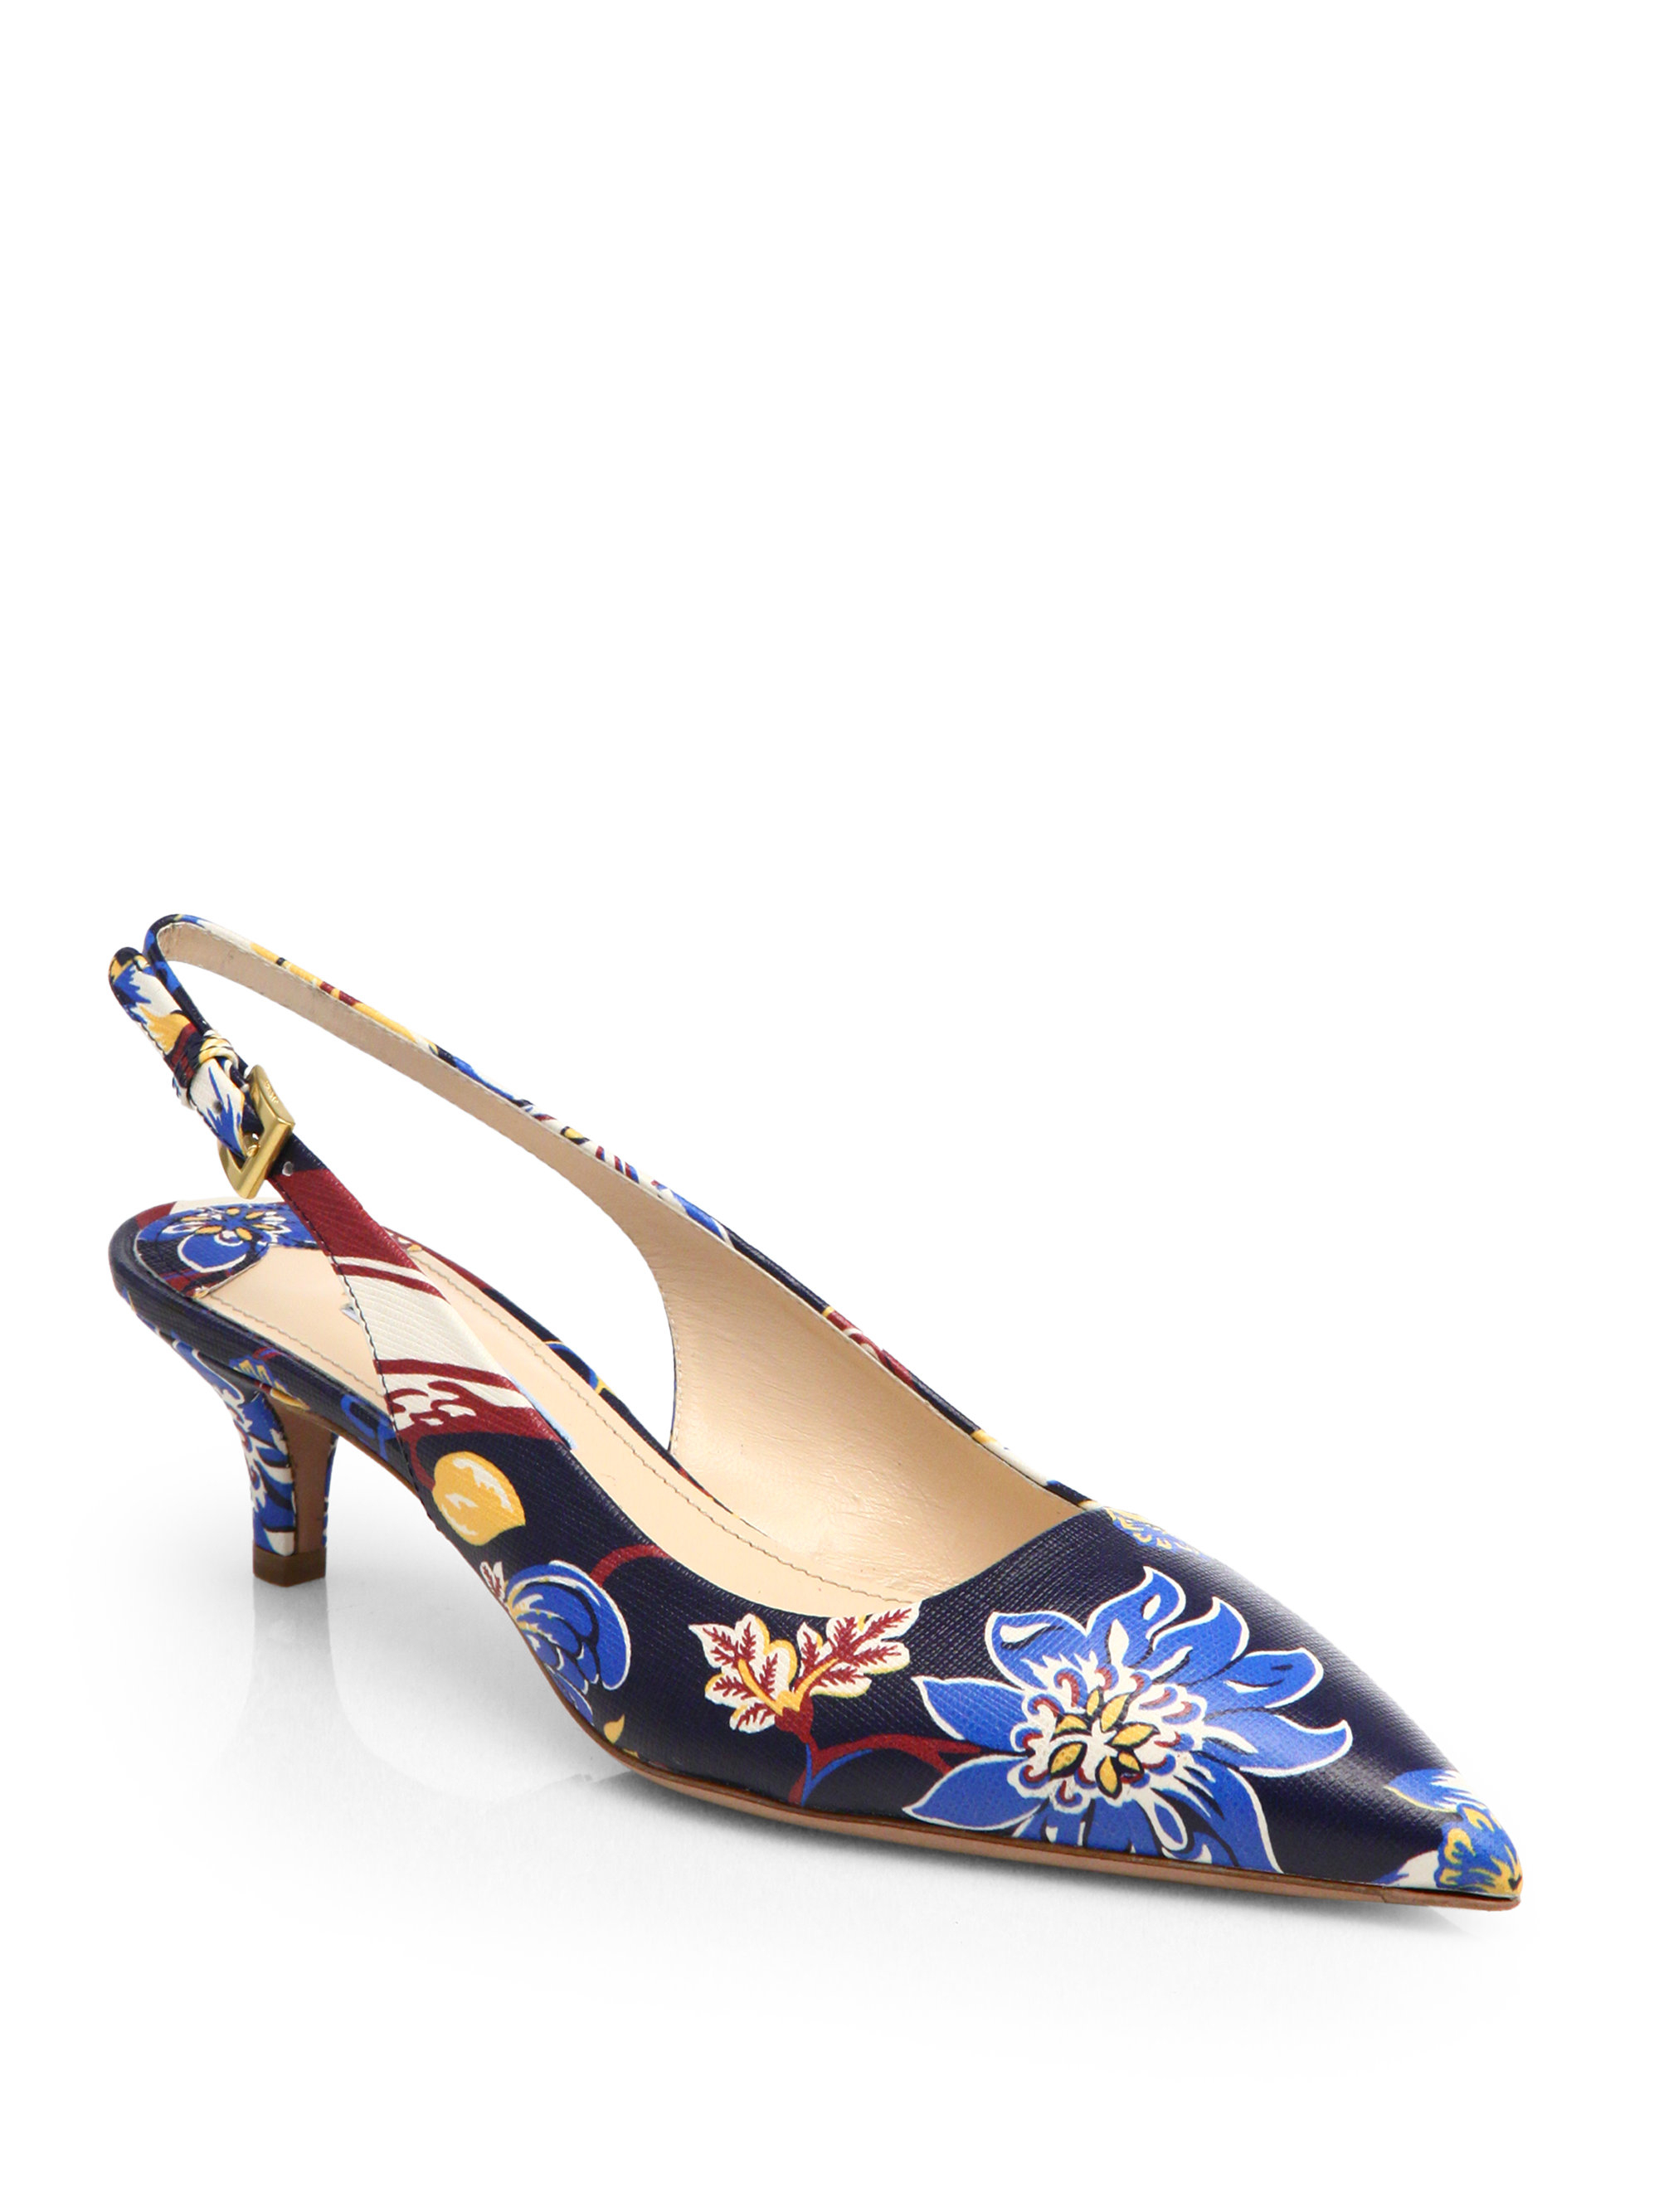 Prada Floral Print Leather Slingback Pumps Lyst